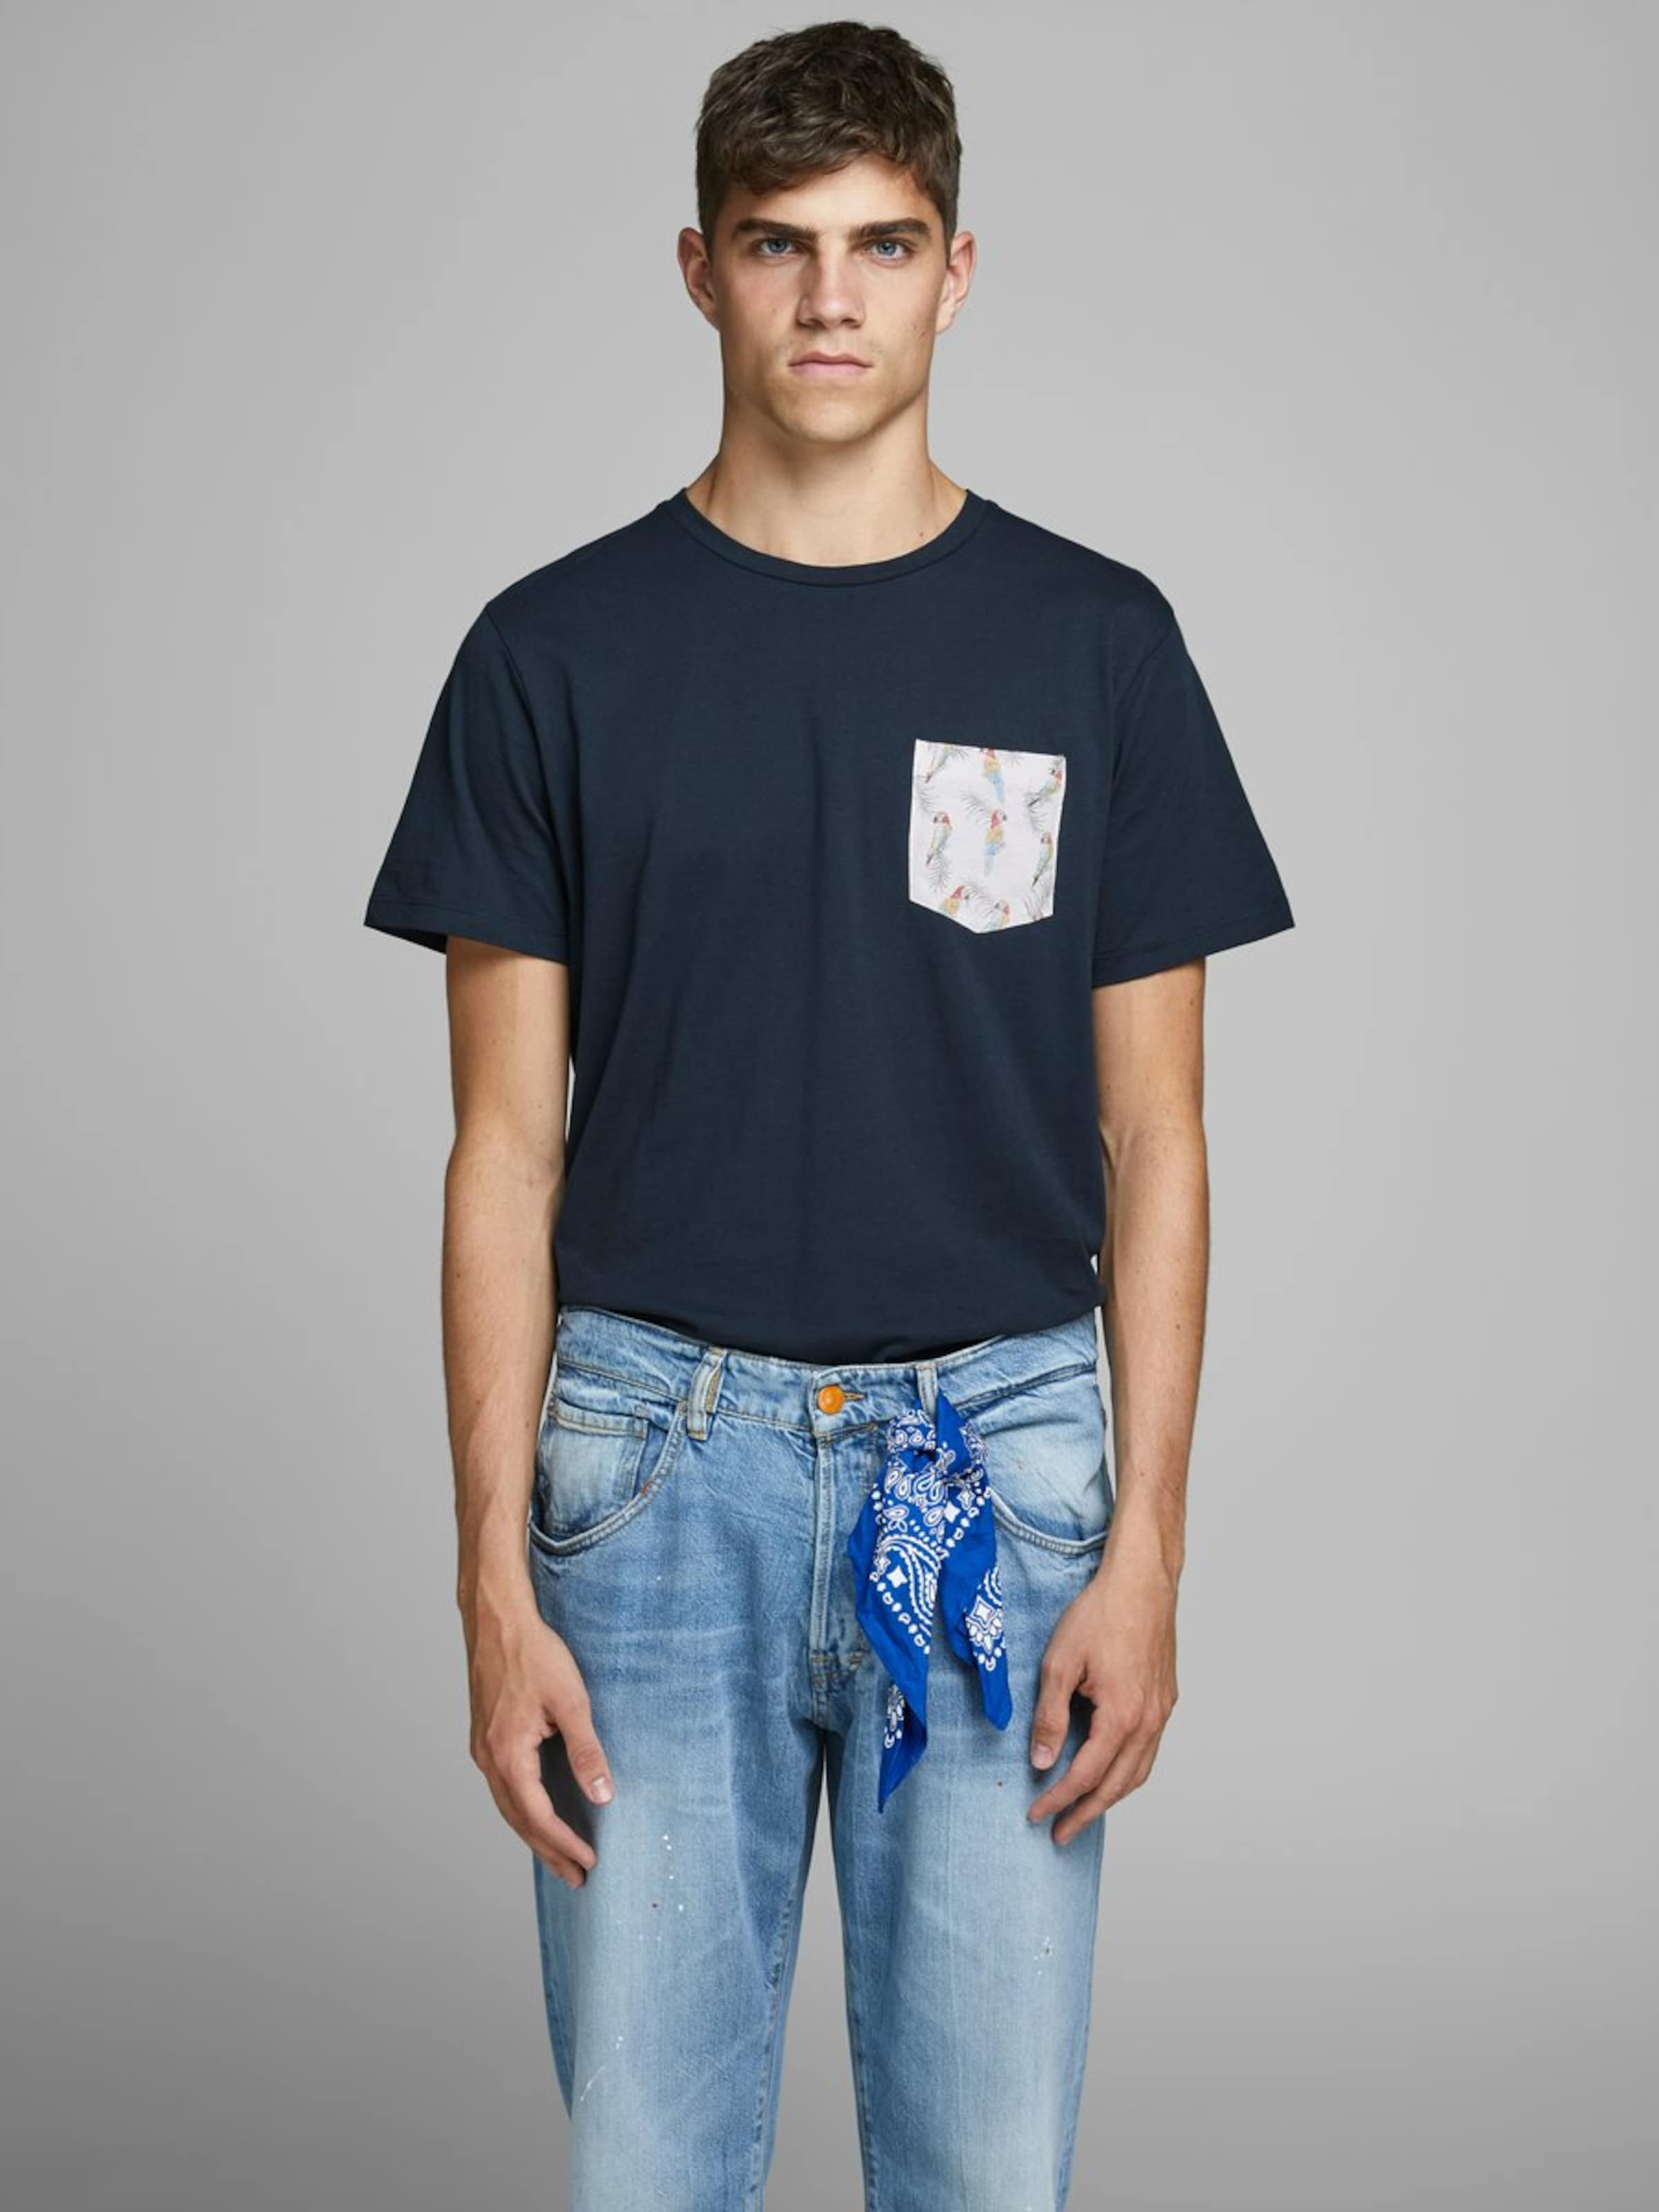 T Jackamp; Jones En Nuit Bleu shirt PkZuiOX